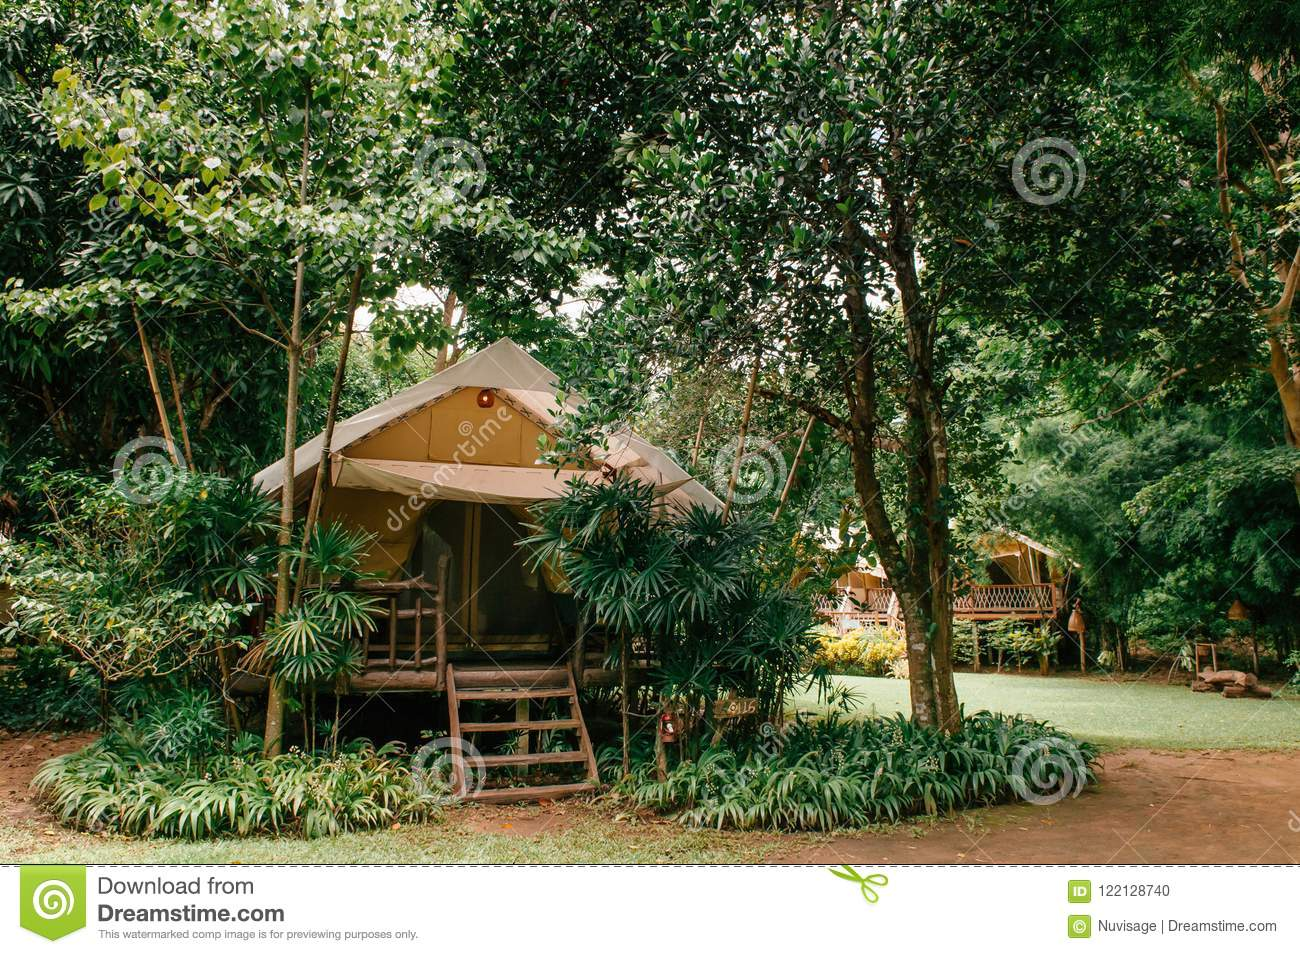 Luxurious camping resort in nature forest, glamping vacation in